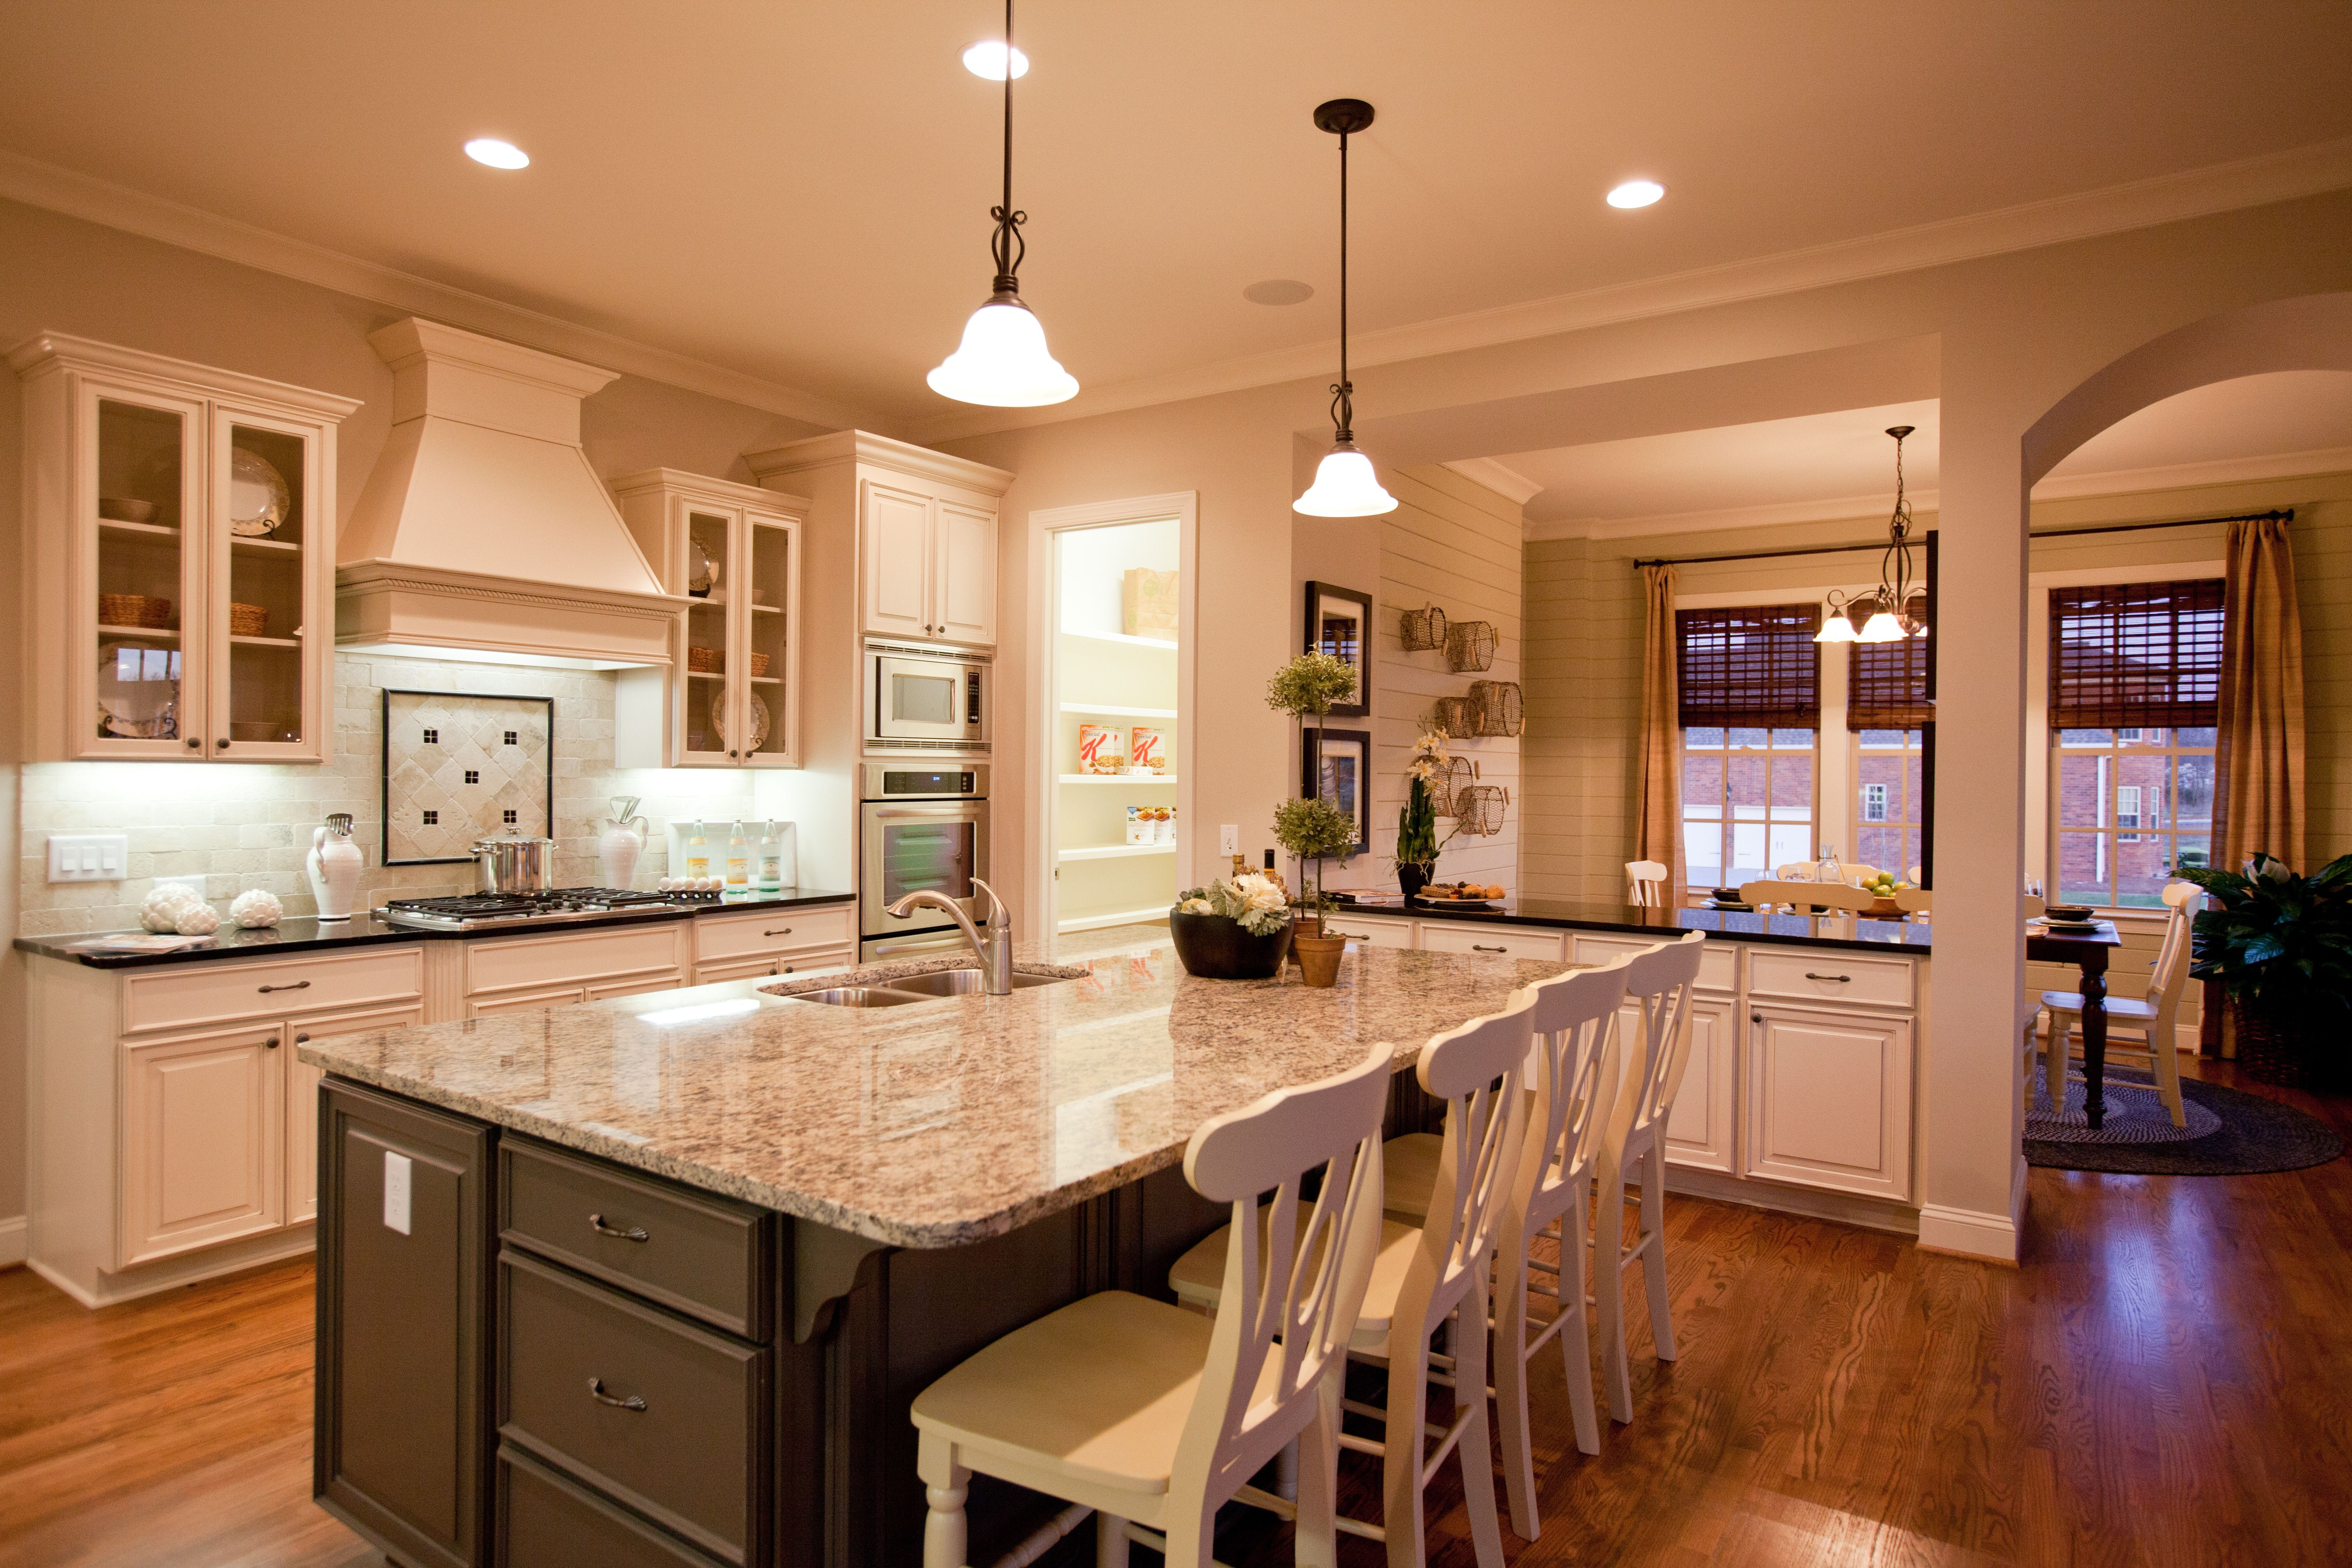 model home kitchen pictures google search kitchen ideas kitchen lighting kitchen kitchen